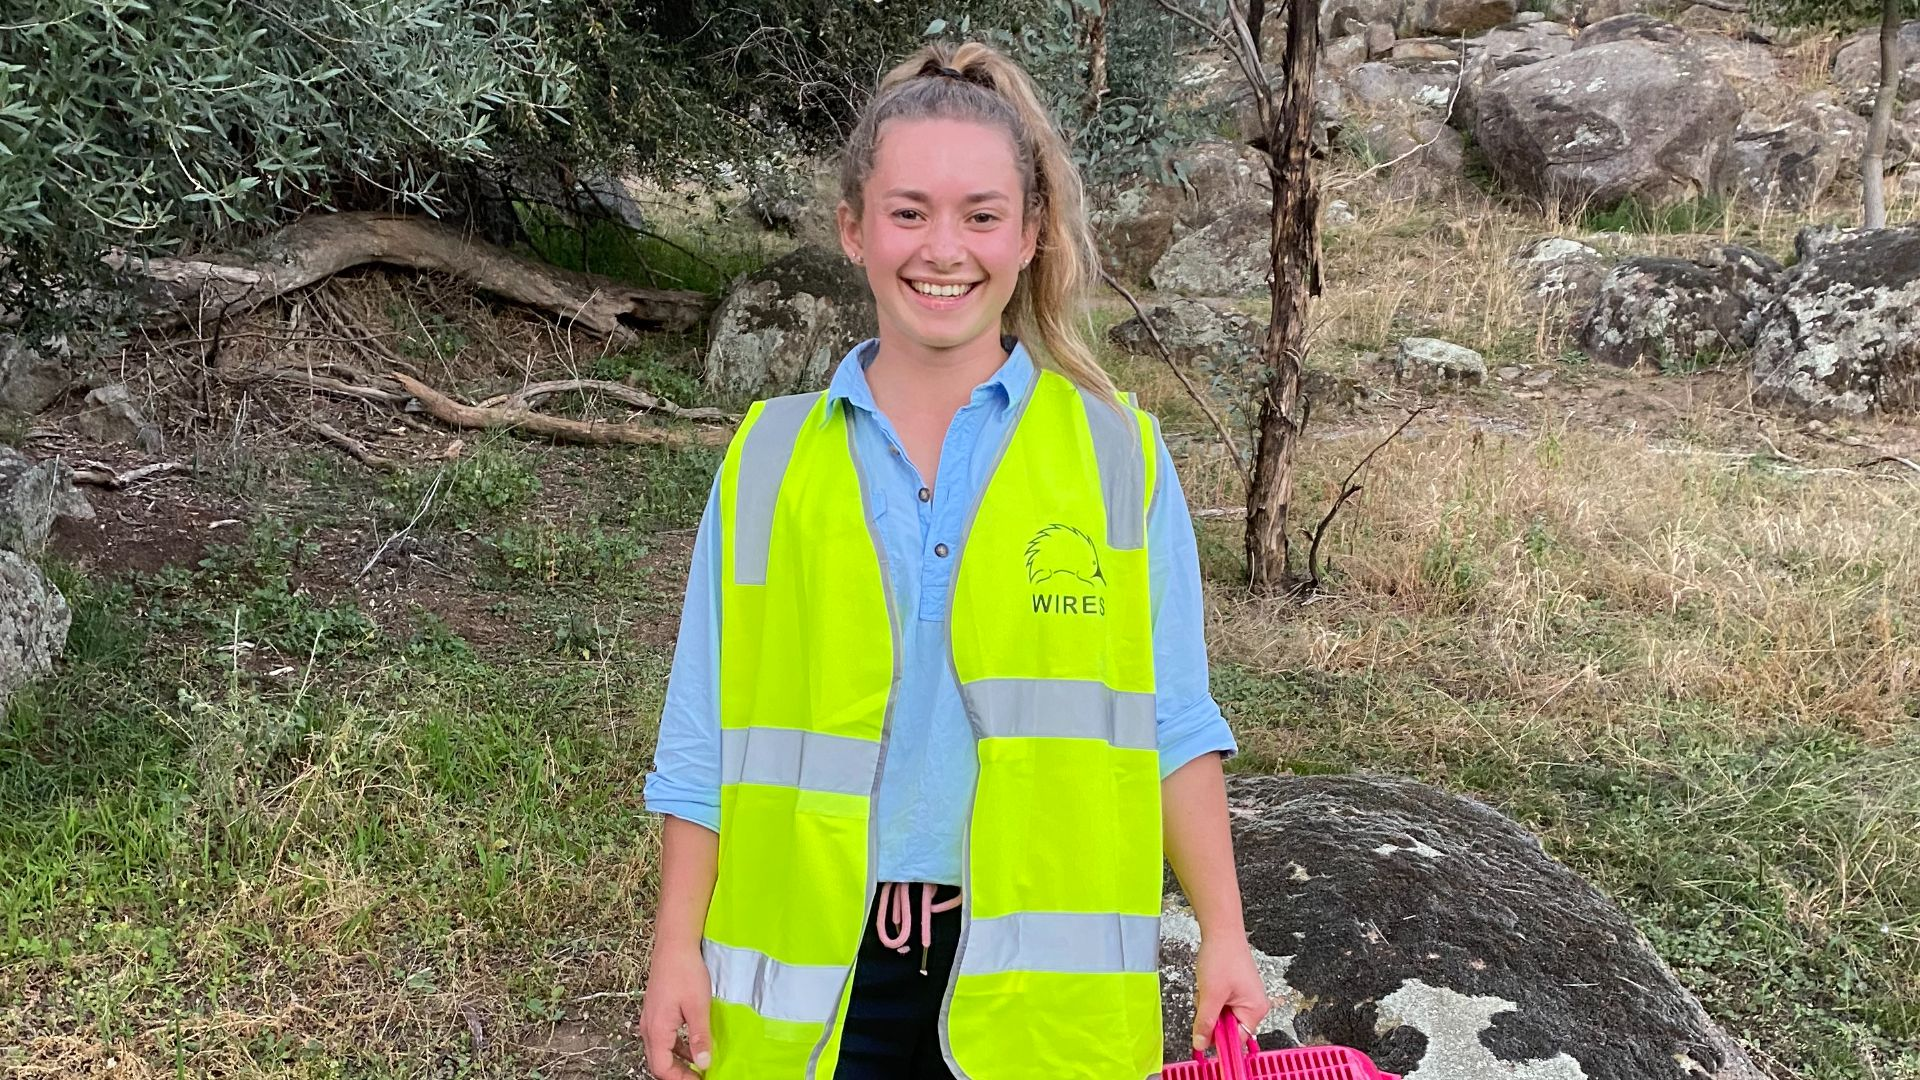 Saving furry friends all in a day's work for student volunteer